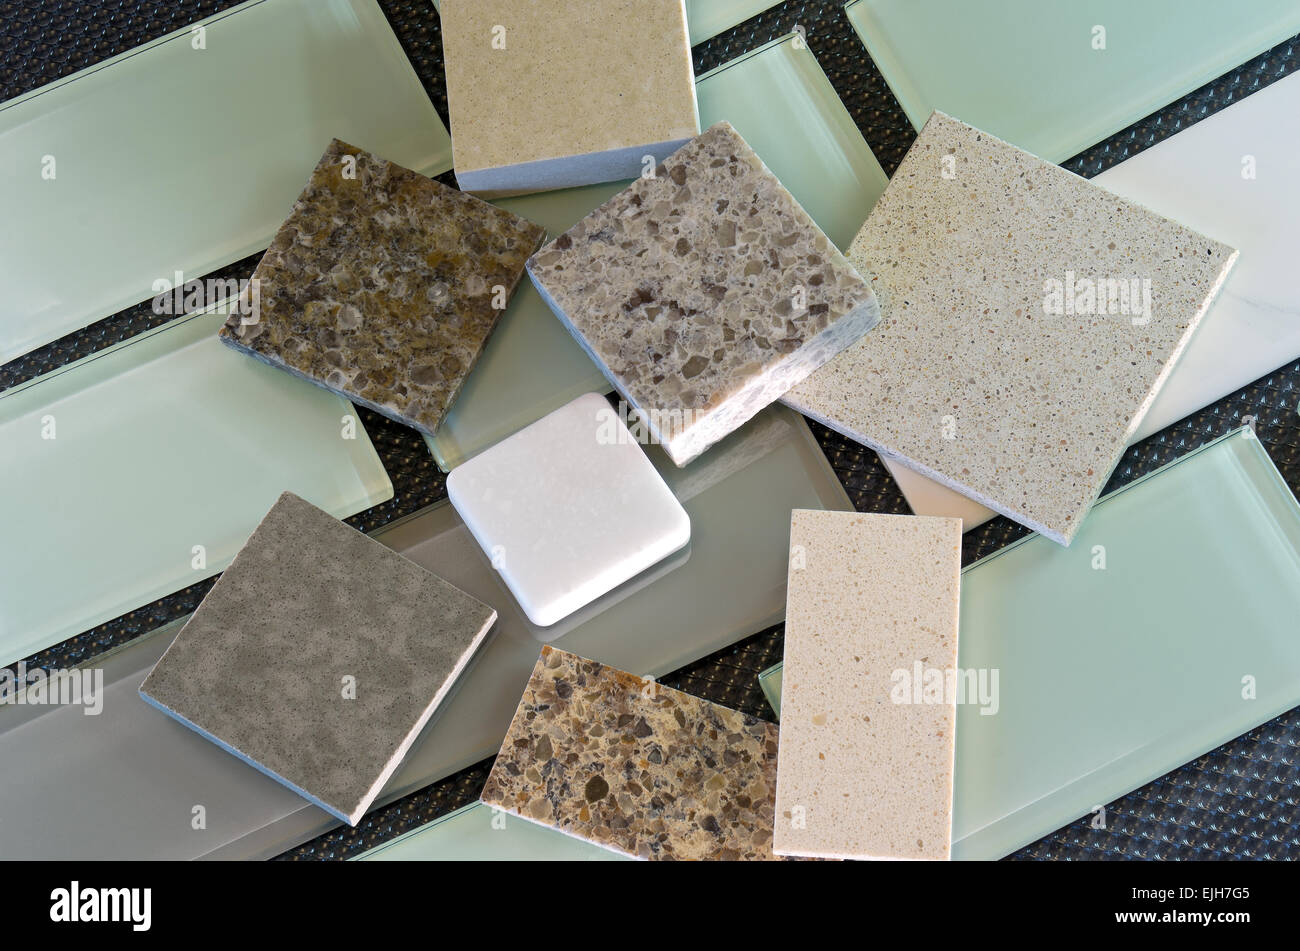 Glass Subway Tile Samples Used In Kitchen Backsplashes And Quartz